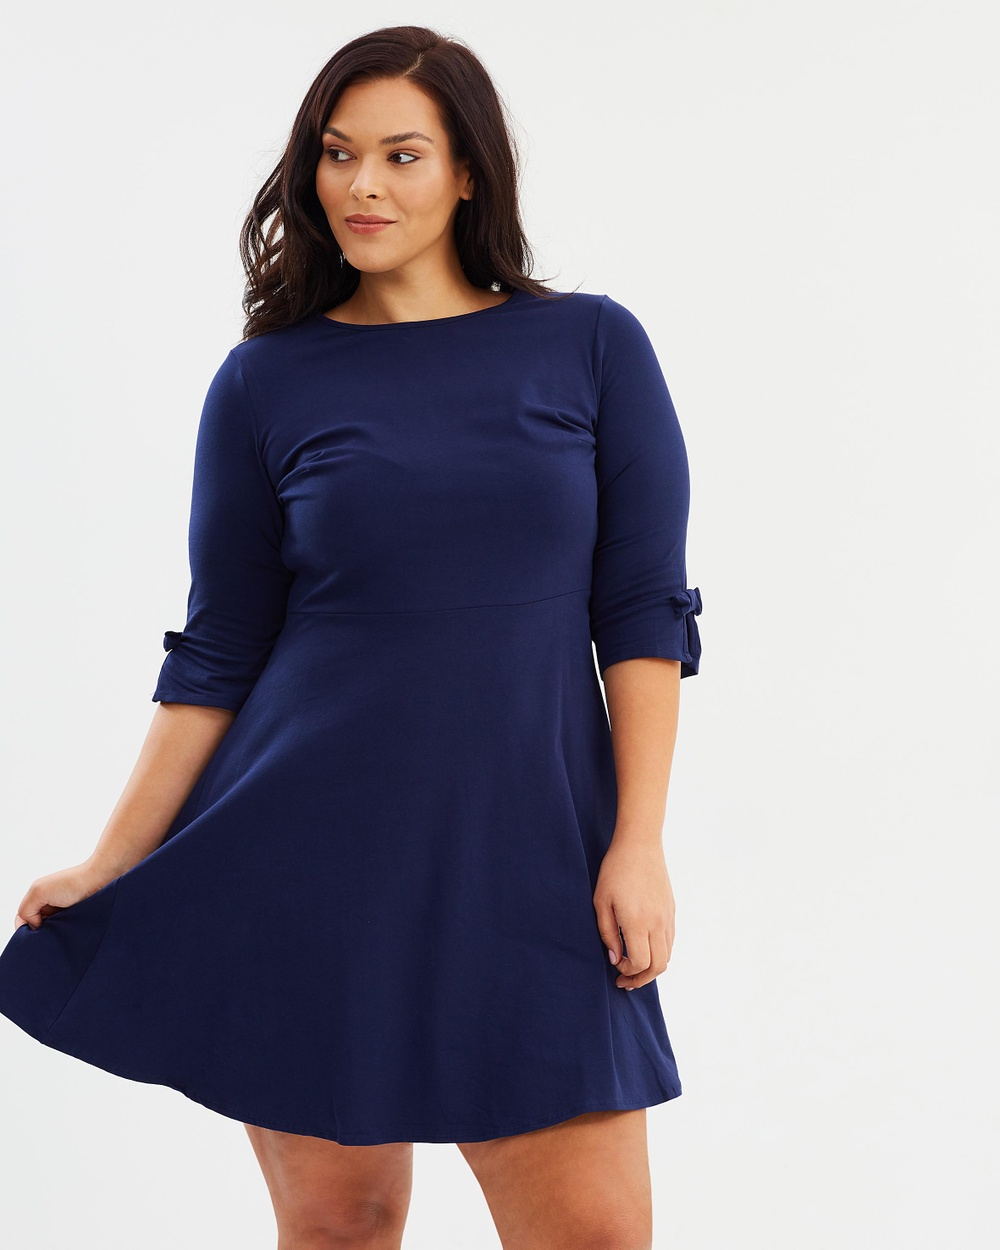 DP Curve Bow Sleeve Detail Fit and Flare Dress Dresses Navy Bow Sleeve Detail Fit-and-Flare Dress